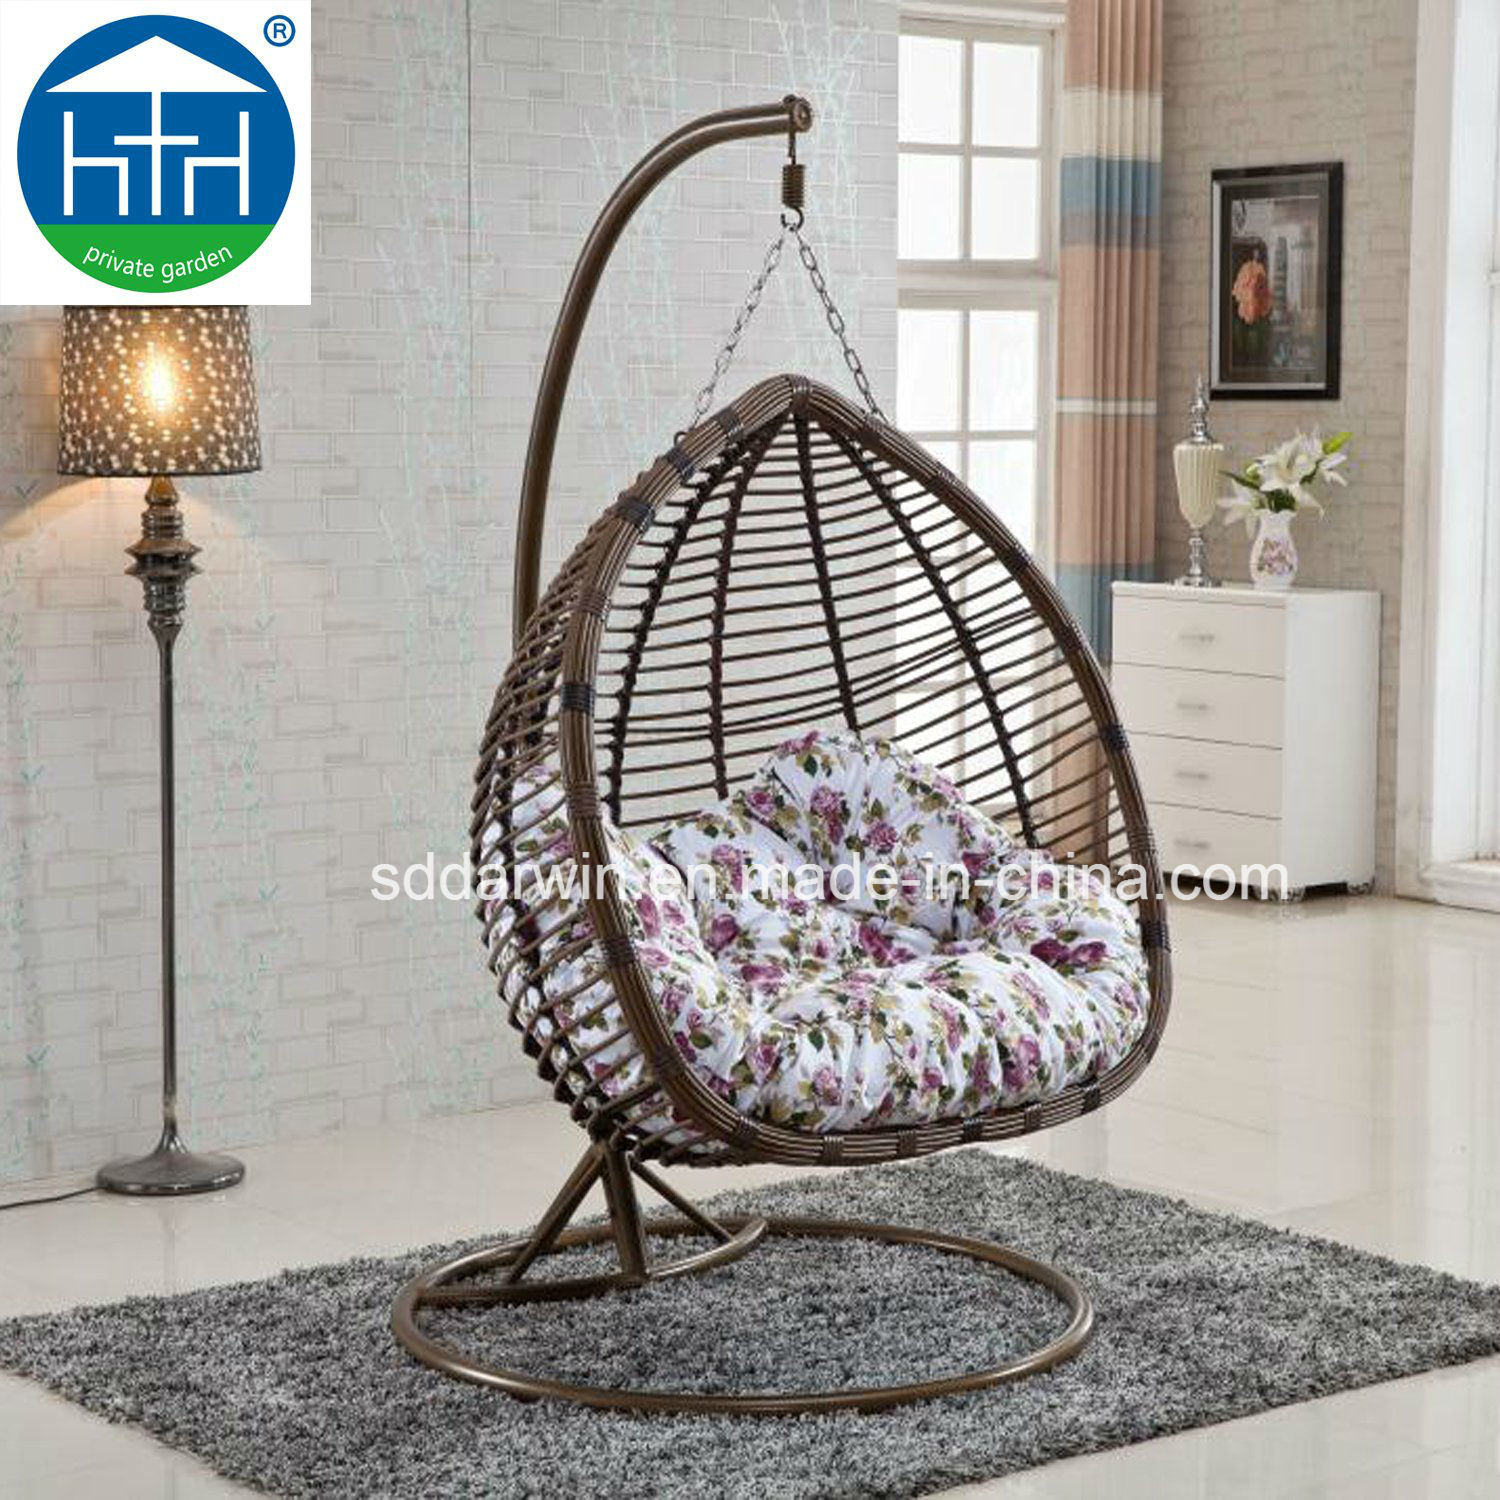 Hanging Chair Outdoor Hot Item Cheap Luxury Patio Pe Wicker Hanging Chair Outdoor Furniture With Iron Base